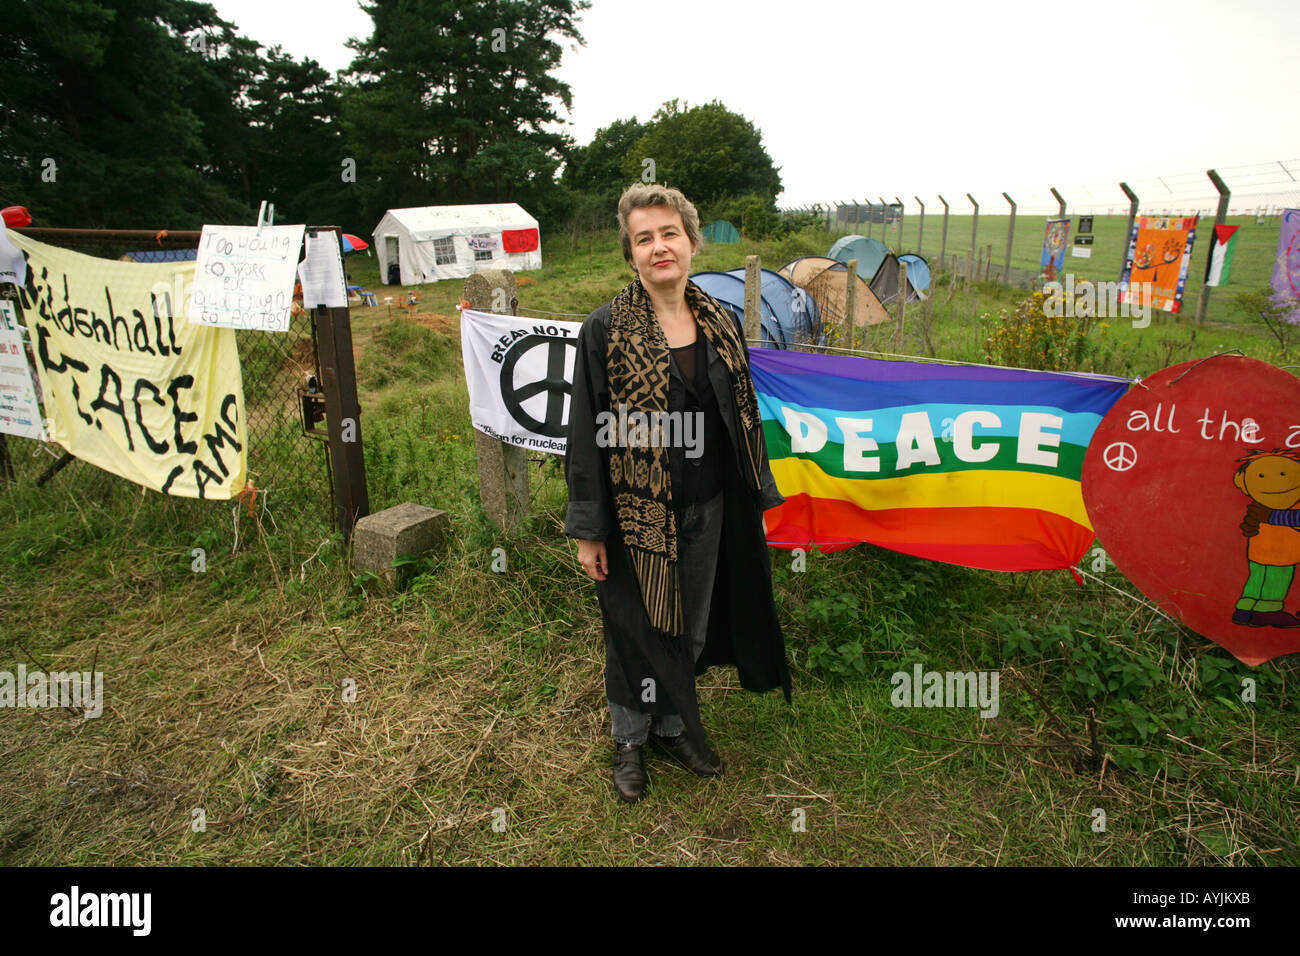 CND chair Kate Hudson at the Peace Camp outside RAF Mildenhall, Suffolk, England, UK. Stock Photo